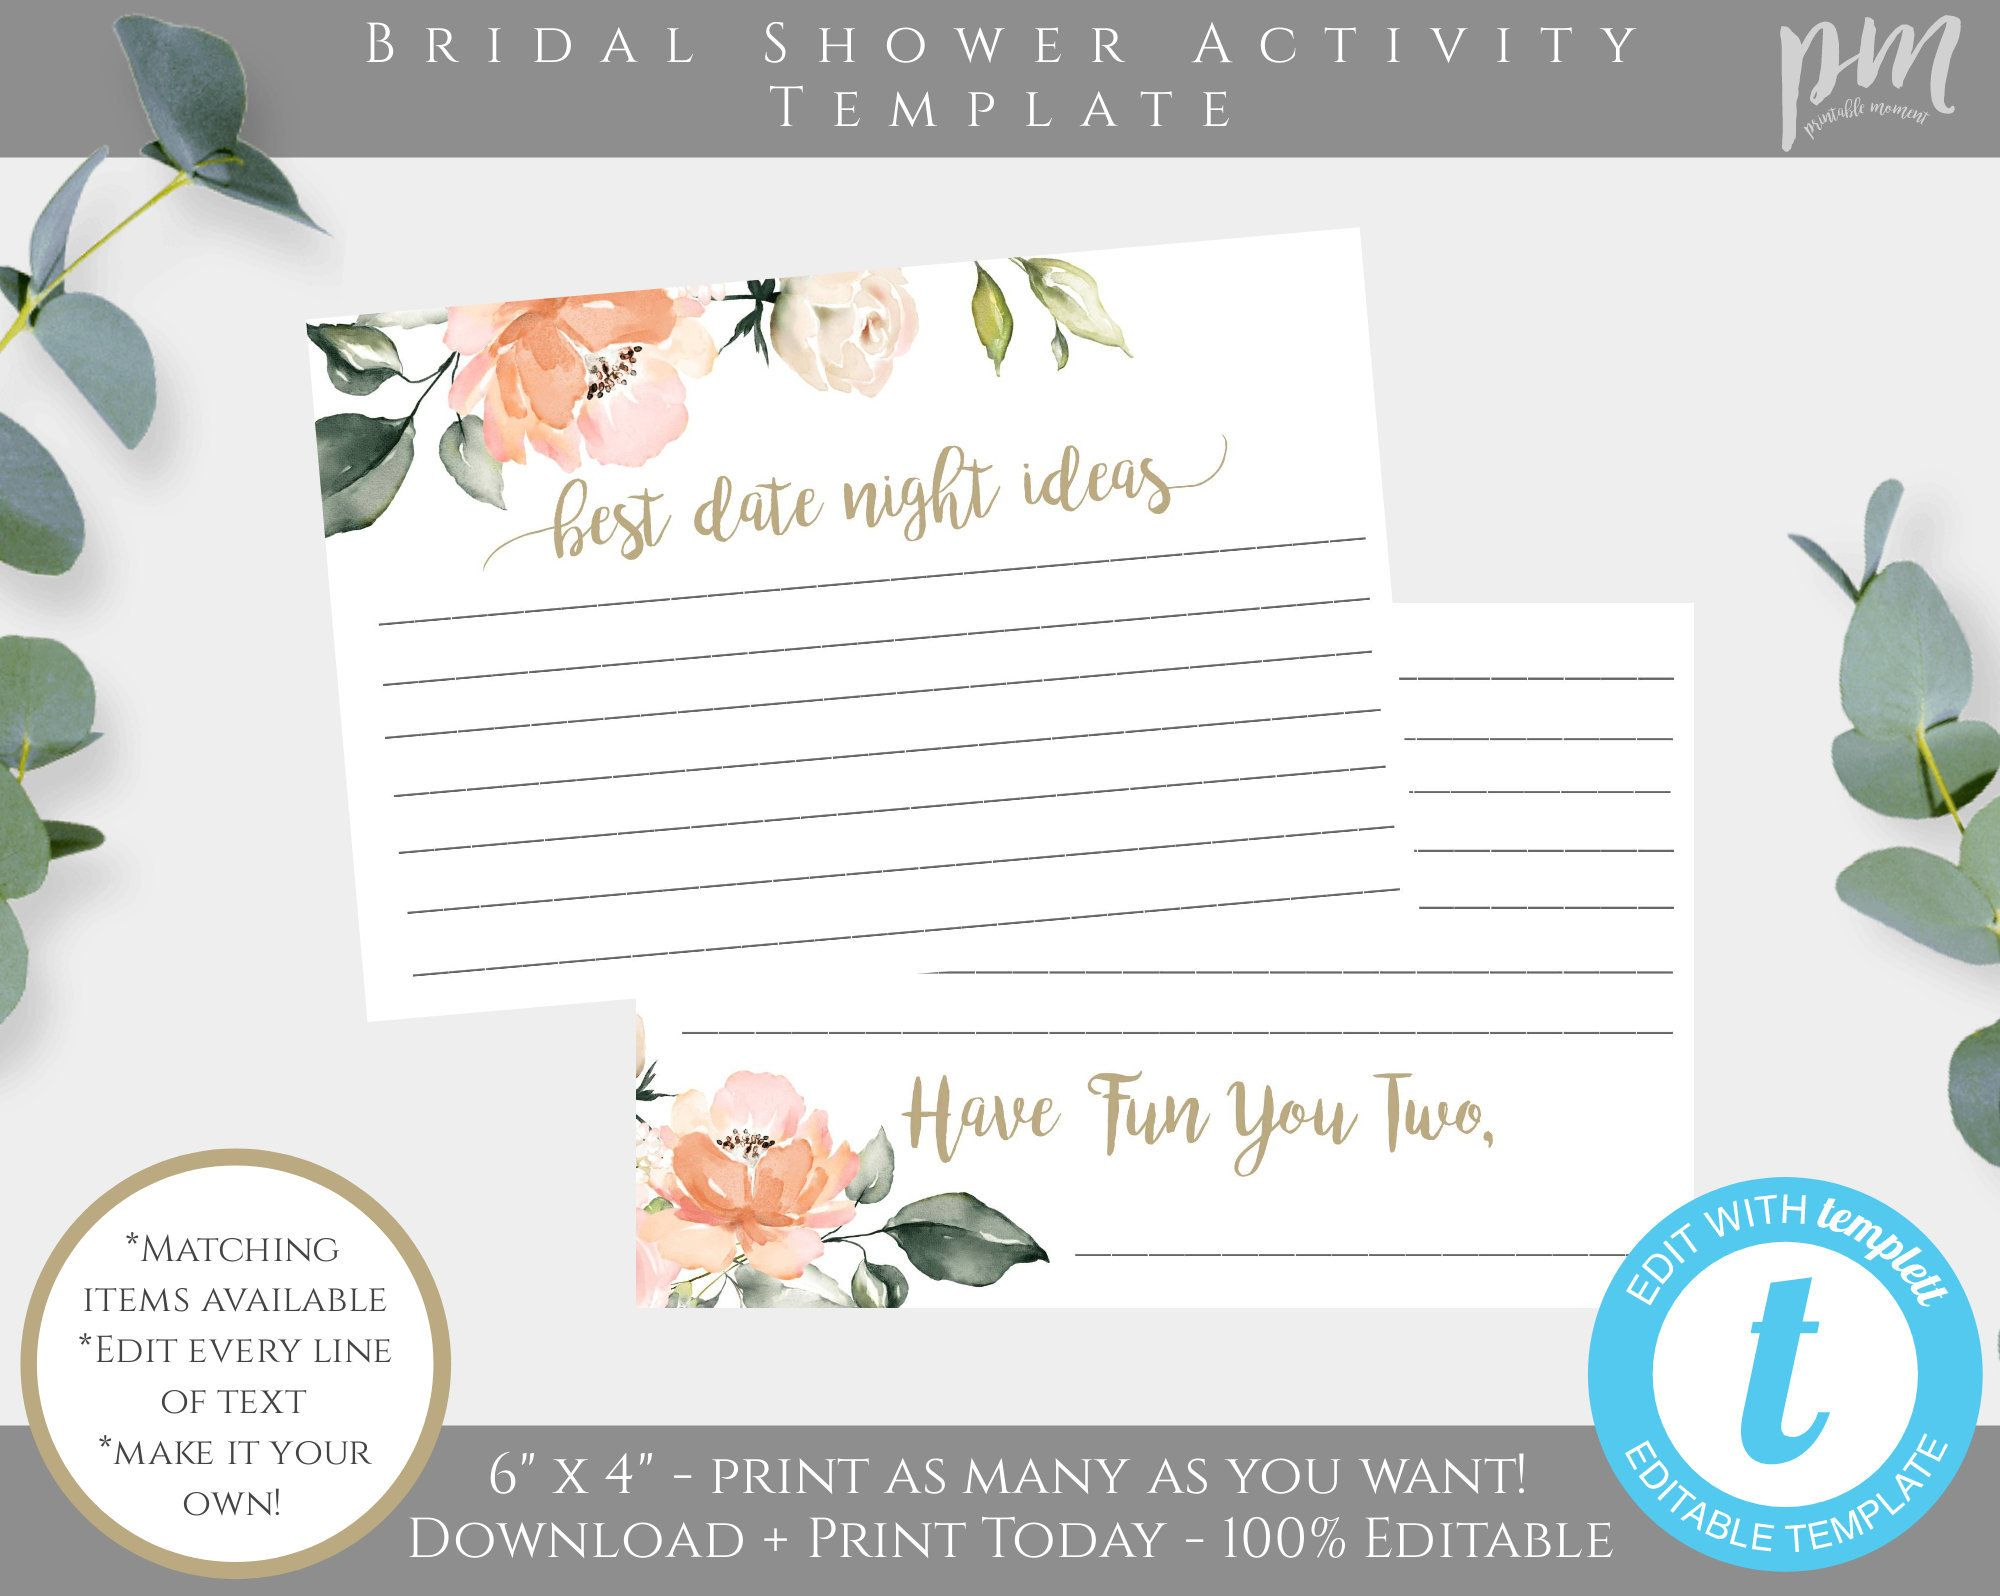 Peach Floral Bridal Shower Date Night Ideas Card Template Bridal Shower Activity Printable Bridal Shower Activities Floral Bridal Shower Peach Bridal Showers